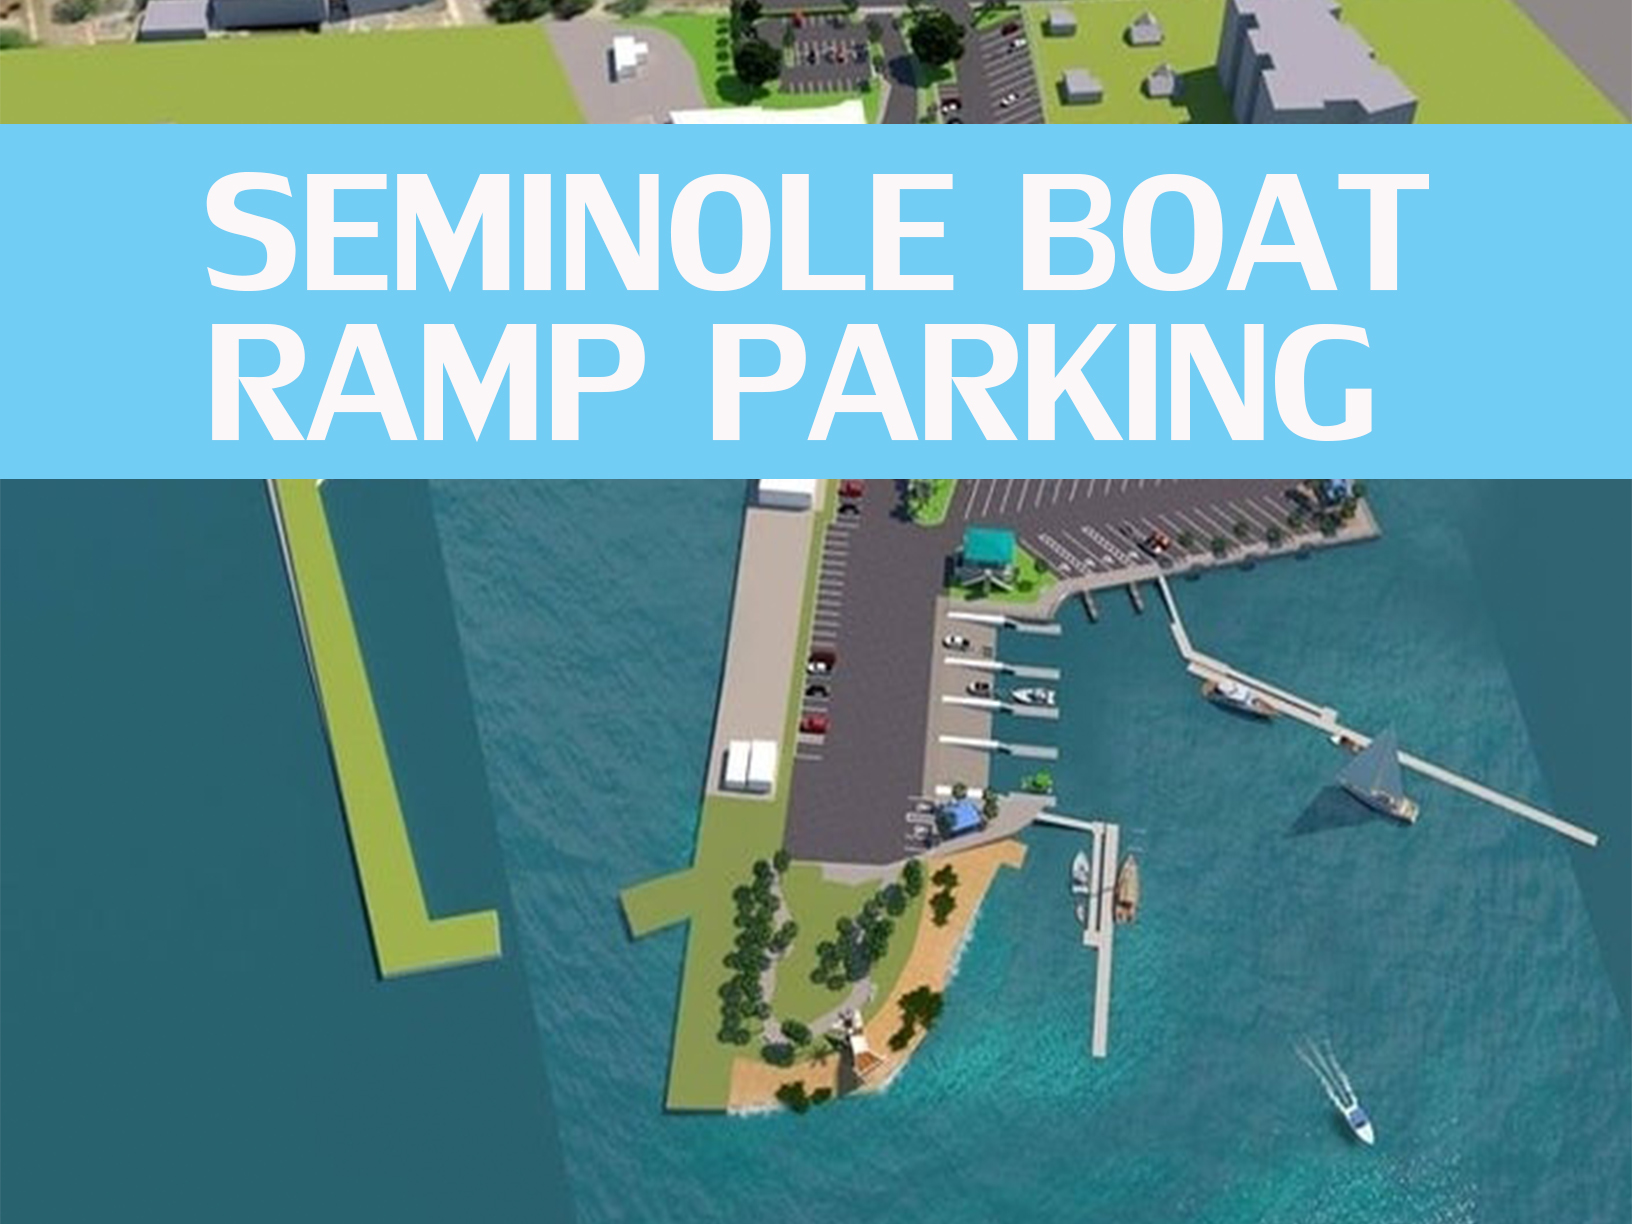 Seminole Boat Ramp, boat parking, park boat, ramp, parking